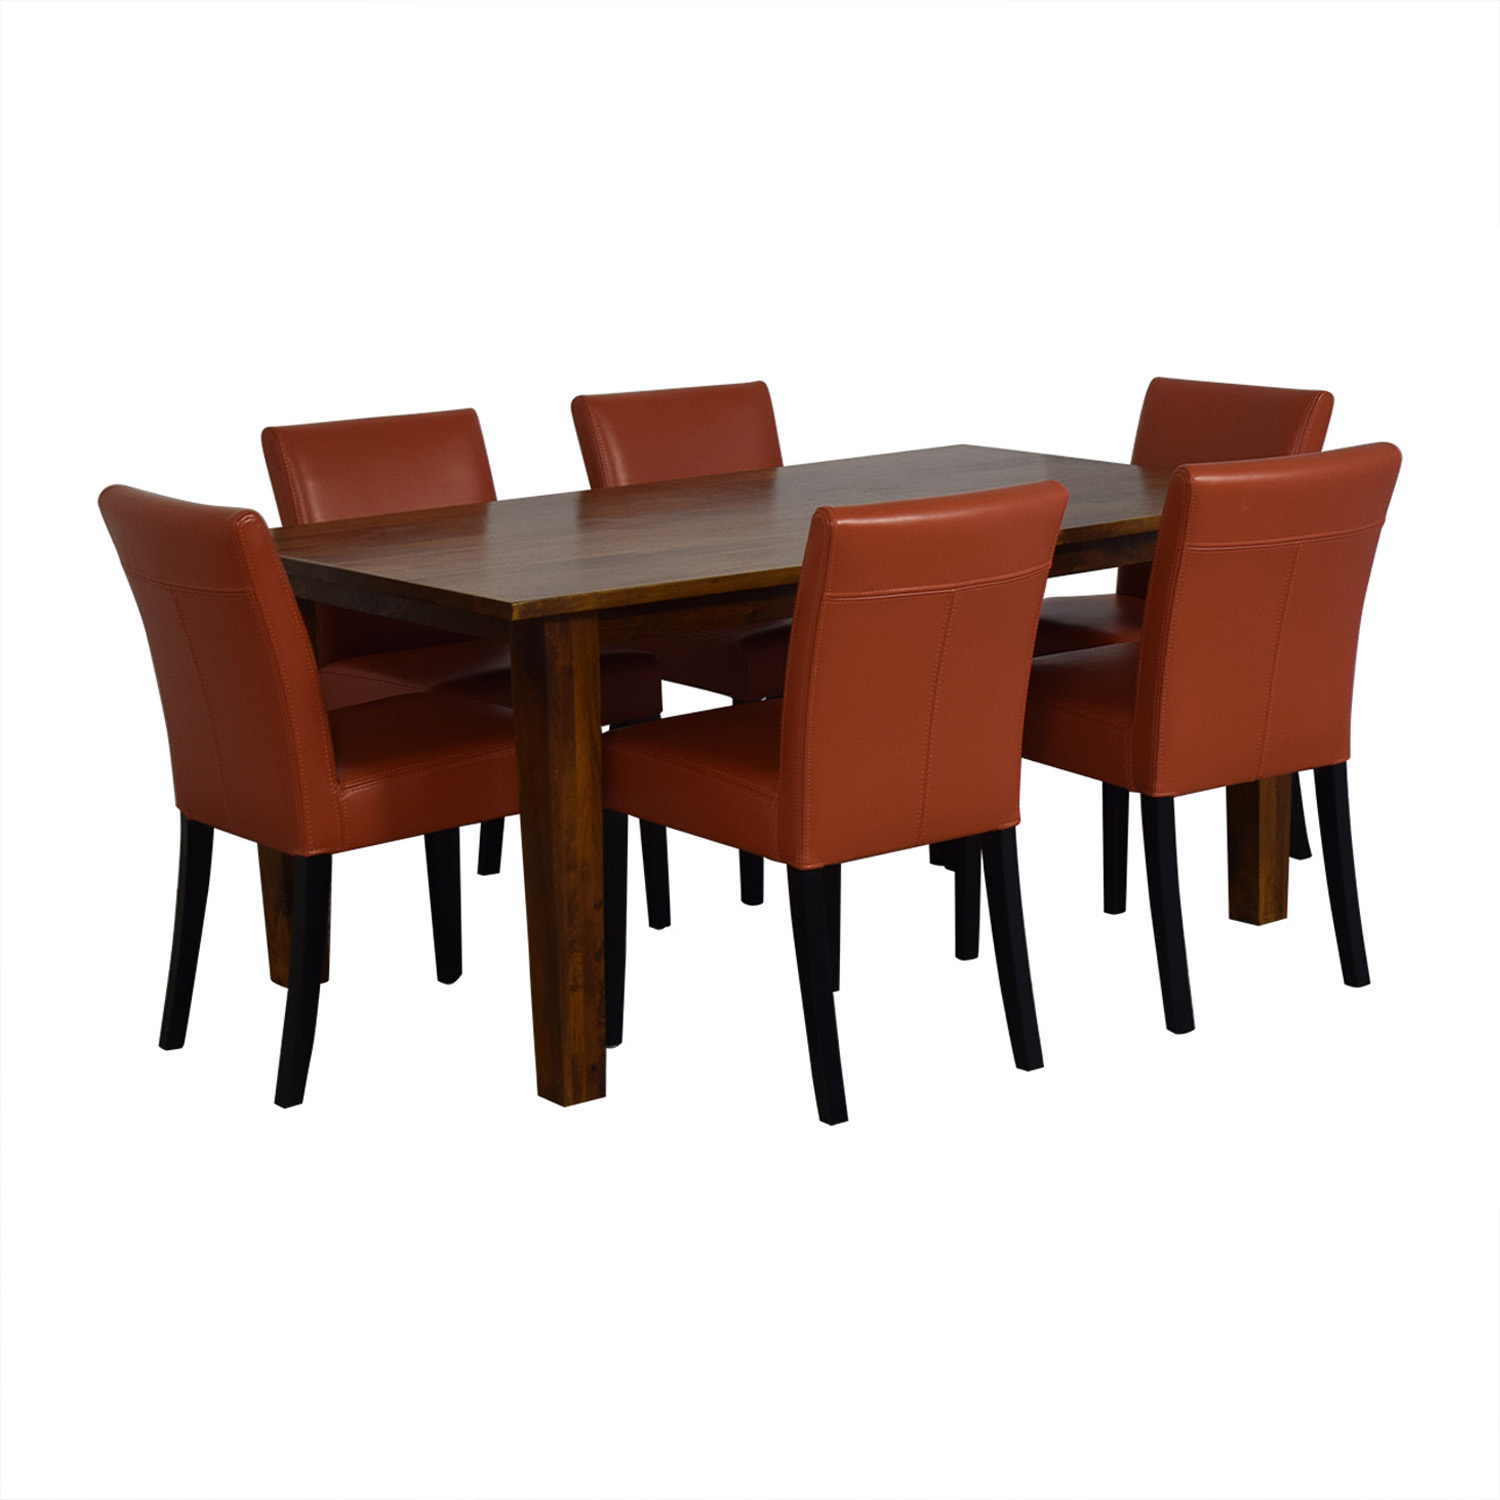 Crate & Barrel Crate & Barrel Basque Honey Dining Set and Lowe Persimmon Chairs price